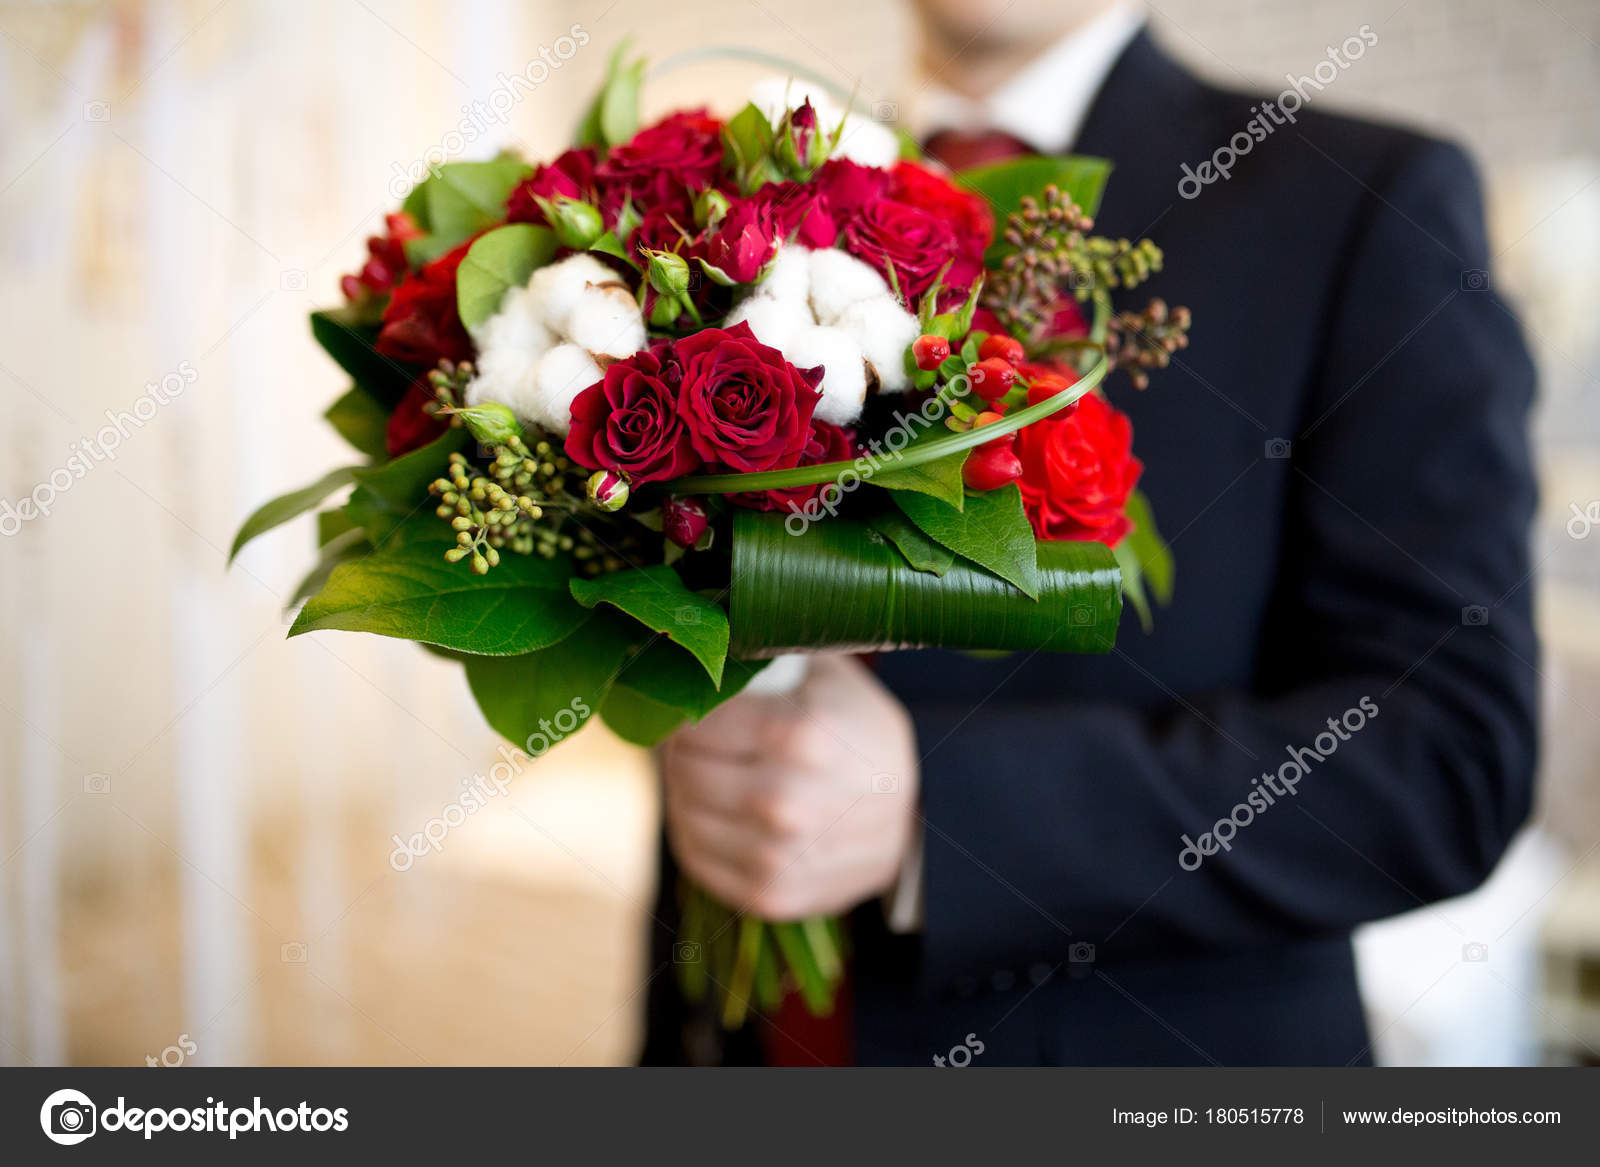 Man With Flower Bouquet Stock Photo Olgaosa 180515778